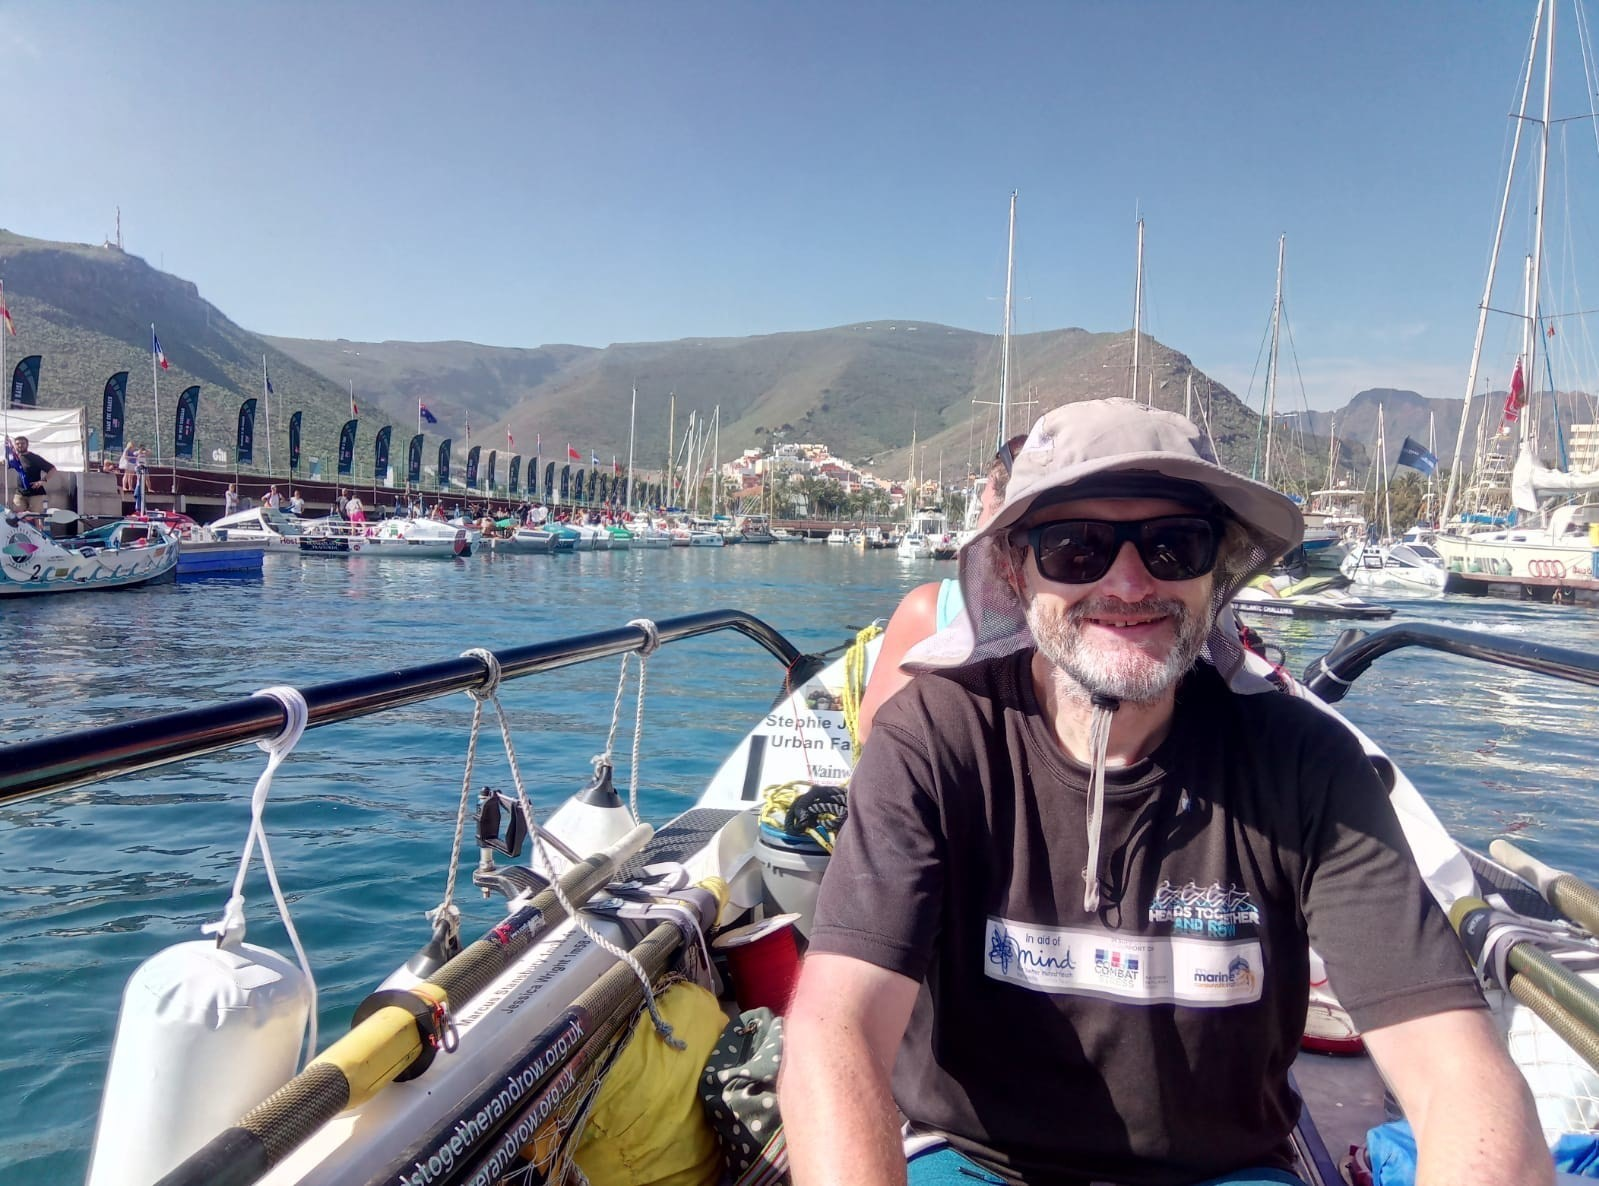 Heads Together and Row: Three things I've learned from three weeks at sea